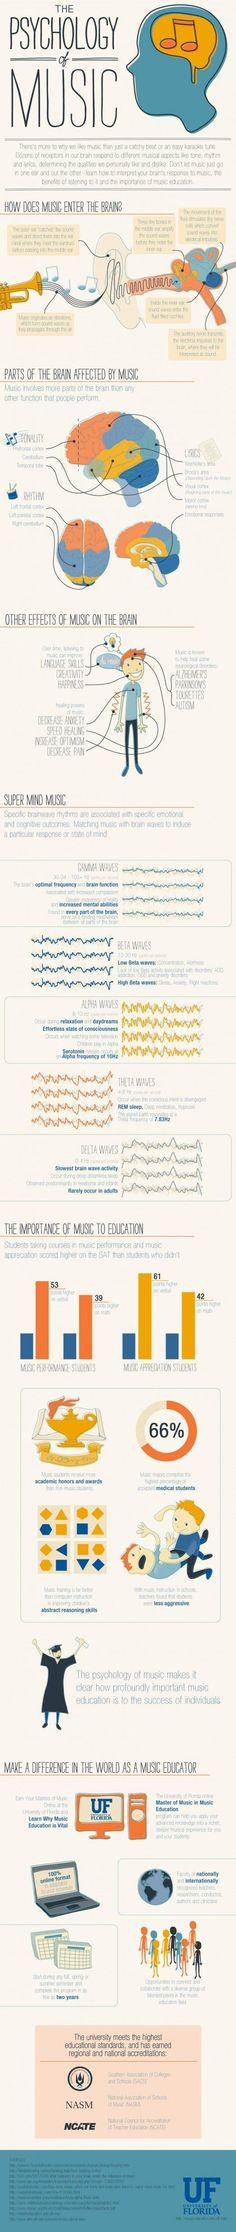 Could have used an info-graphic like this when I was in middle/high school and trying to explain to my parents that I really did concentrate on homework better when I was listening to music... just sayin'...